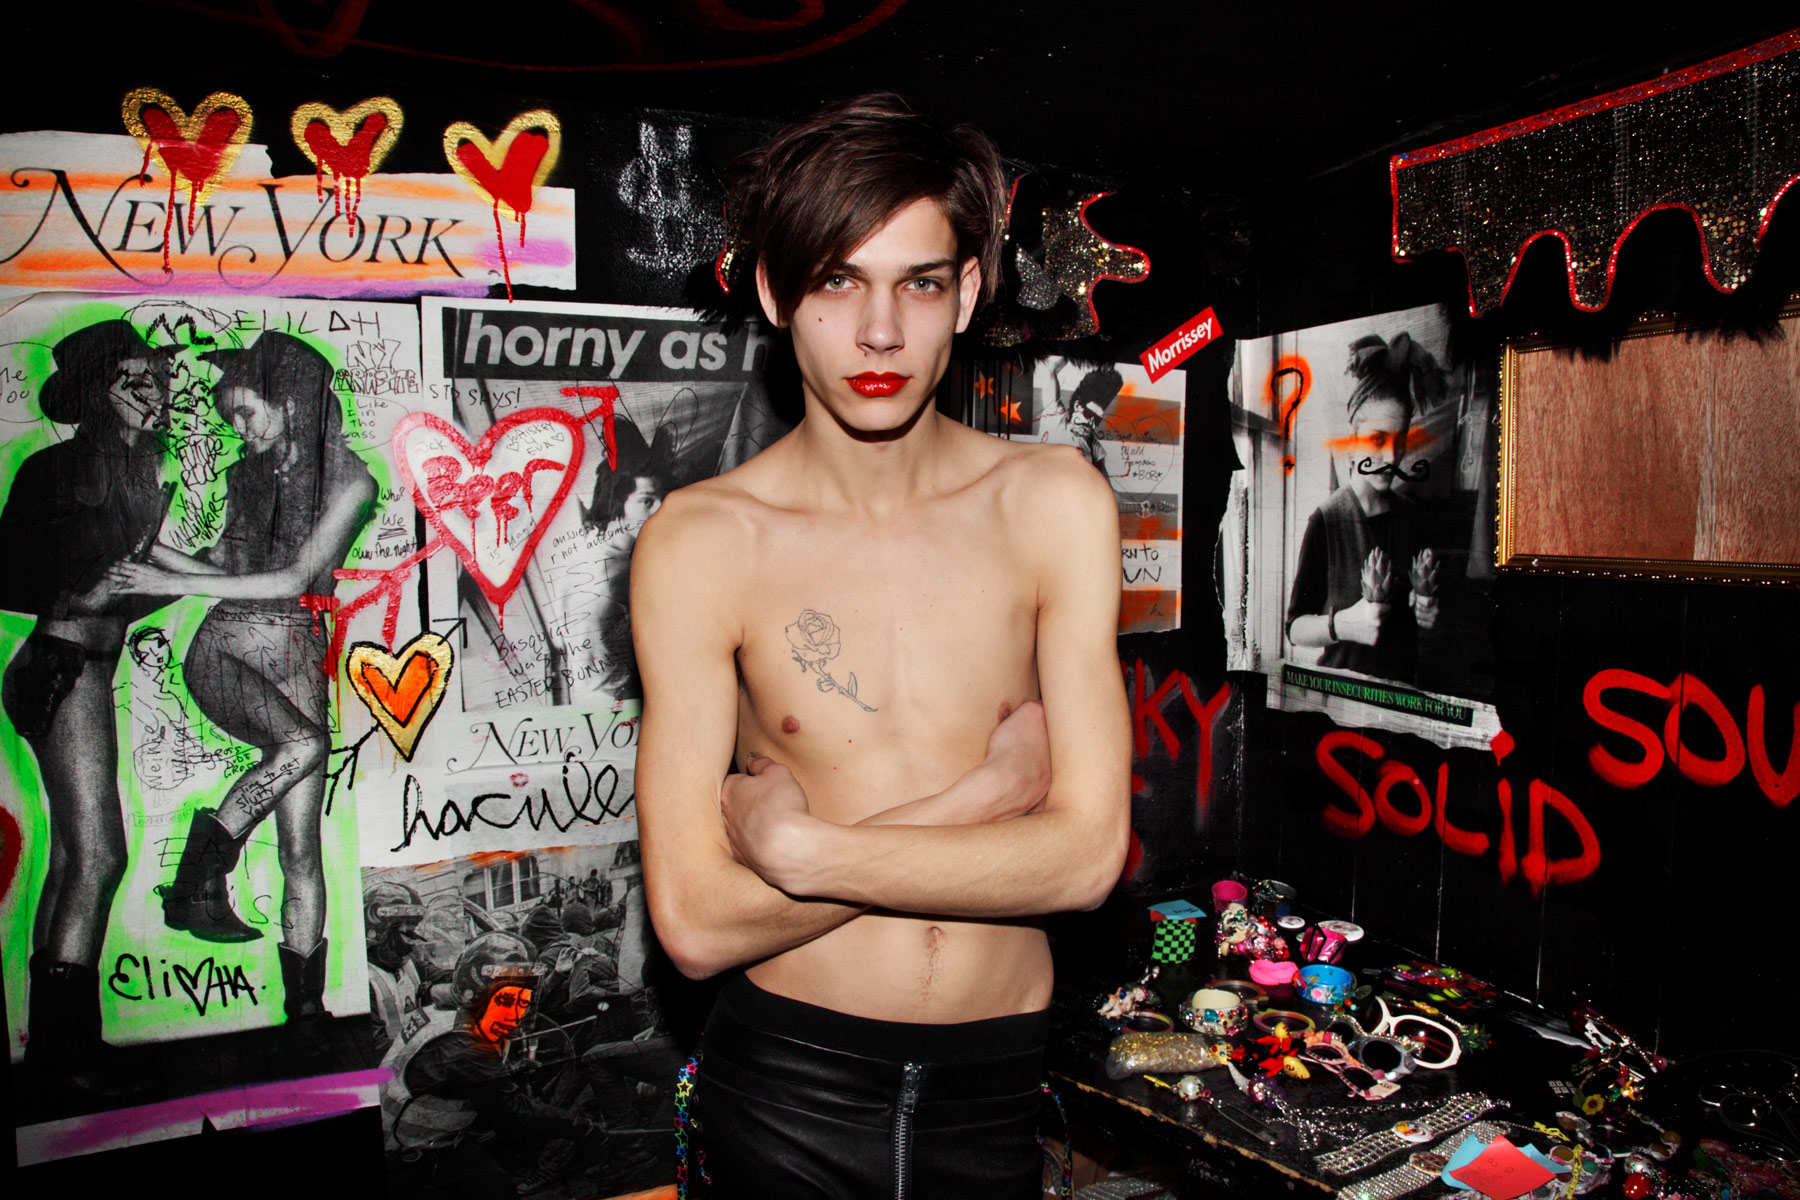 Male model in red lipstick